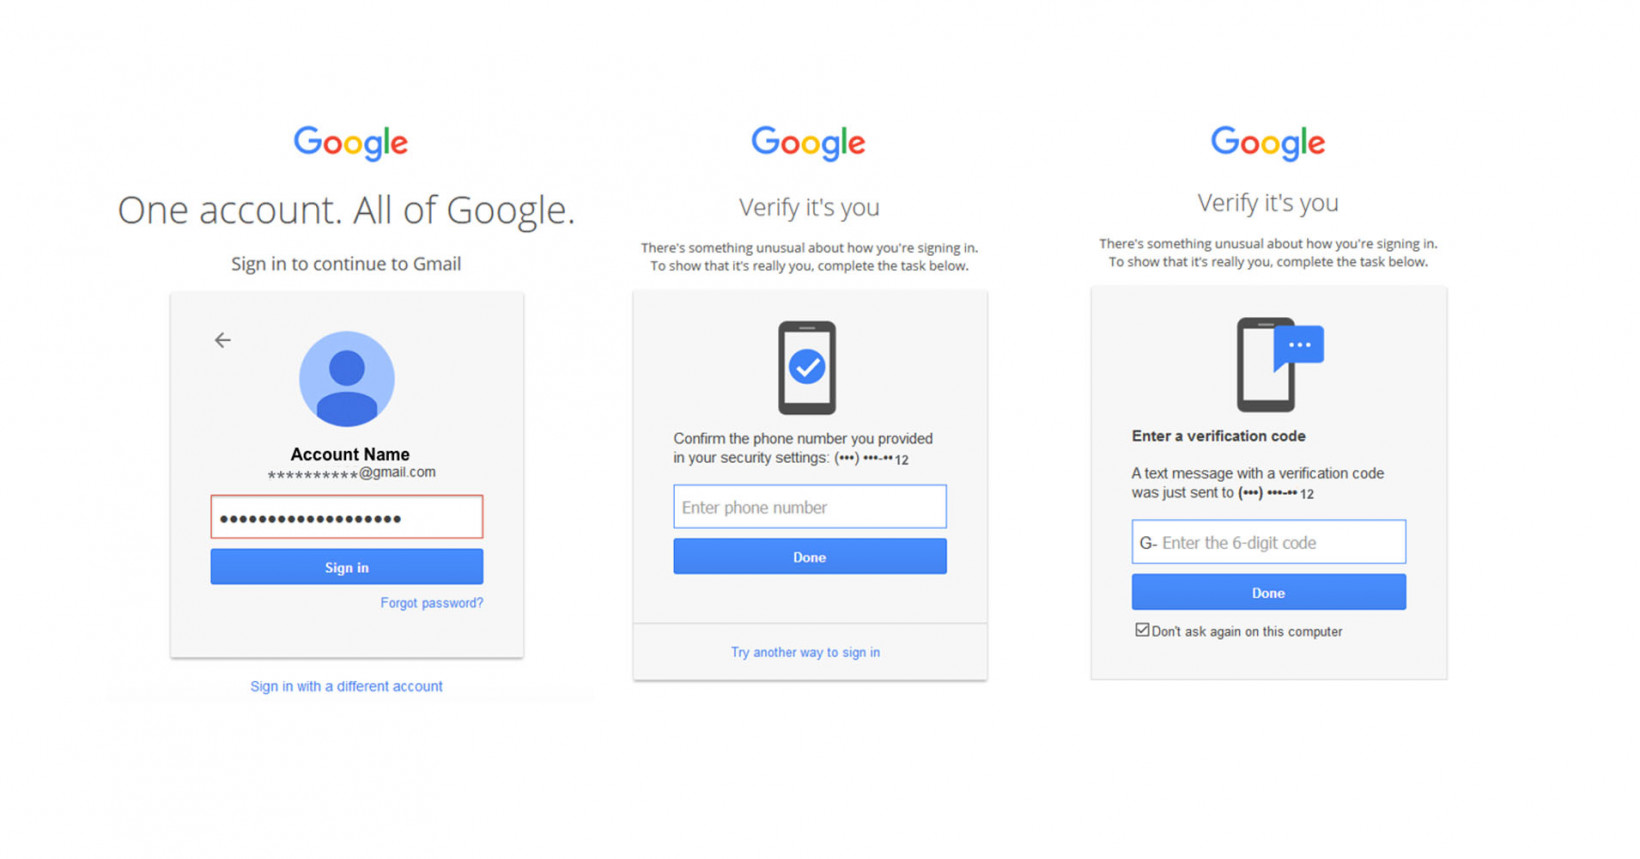 Google data shows 2-step verification blocks 100% percent of bots